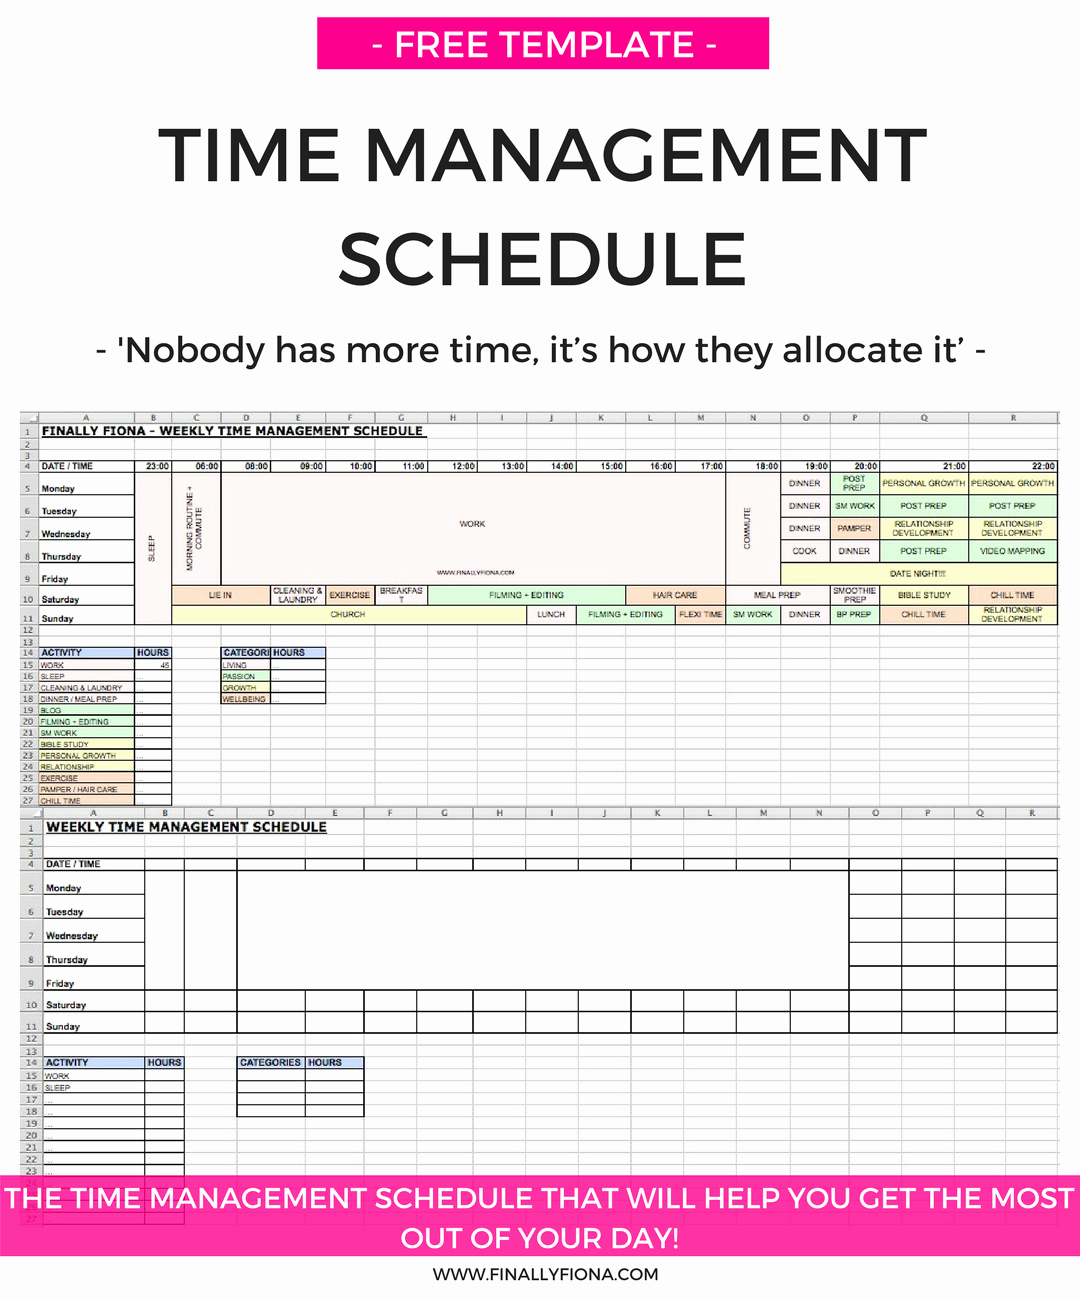 Time Management Sheet Template Elegant My Time Management Schedule & How I Get the Most Out